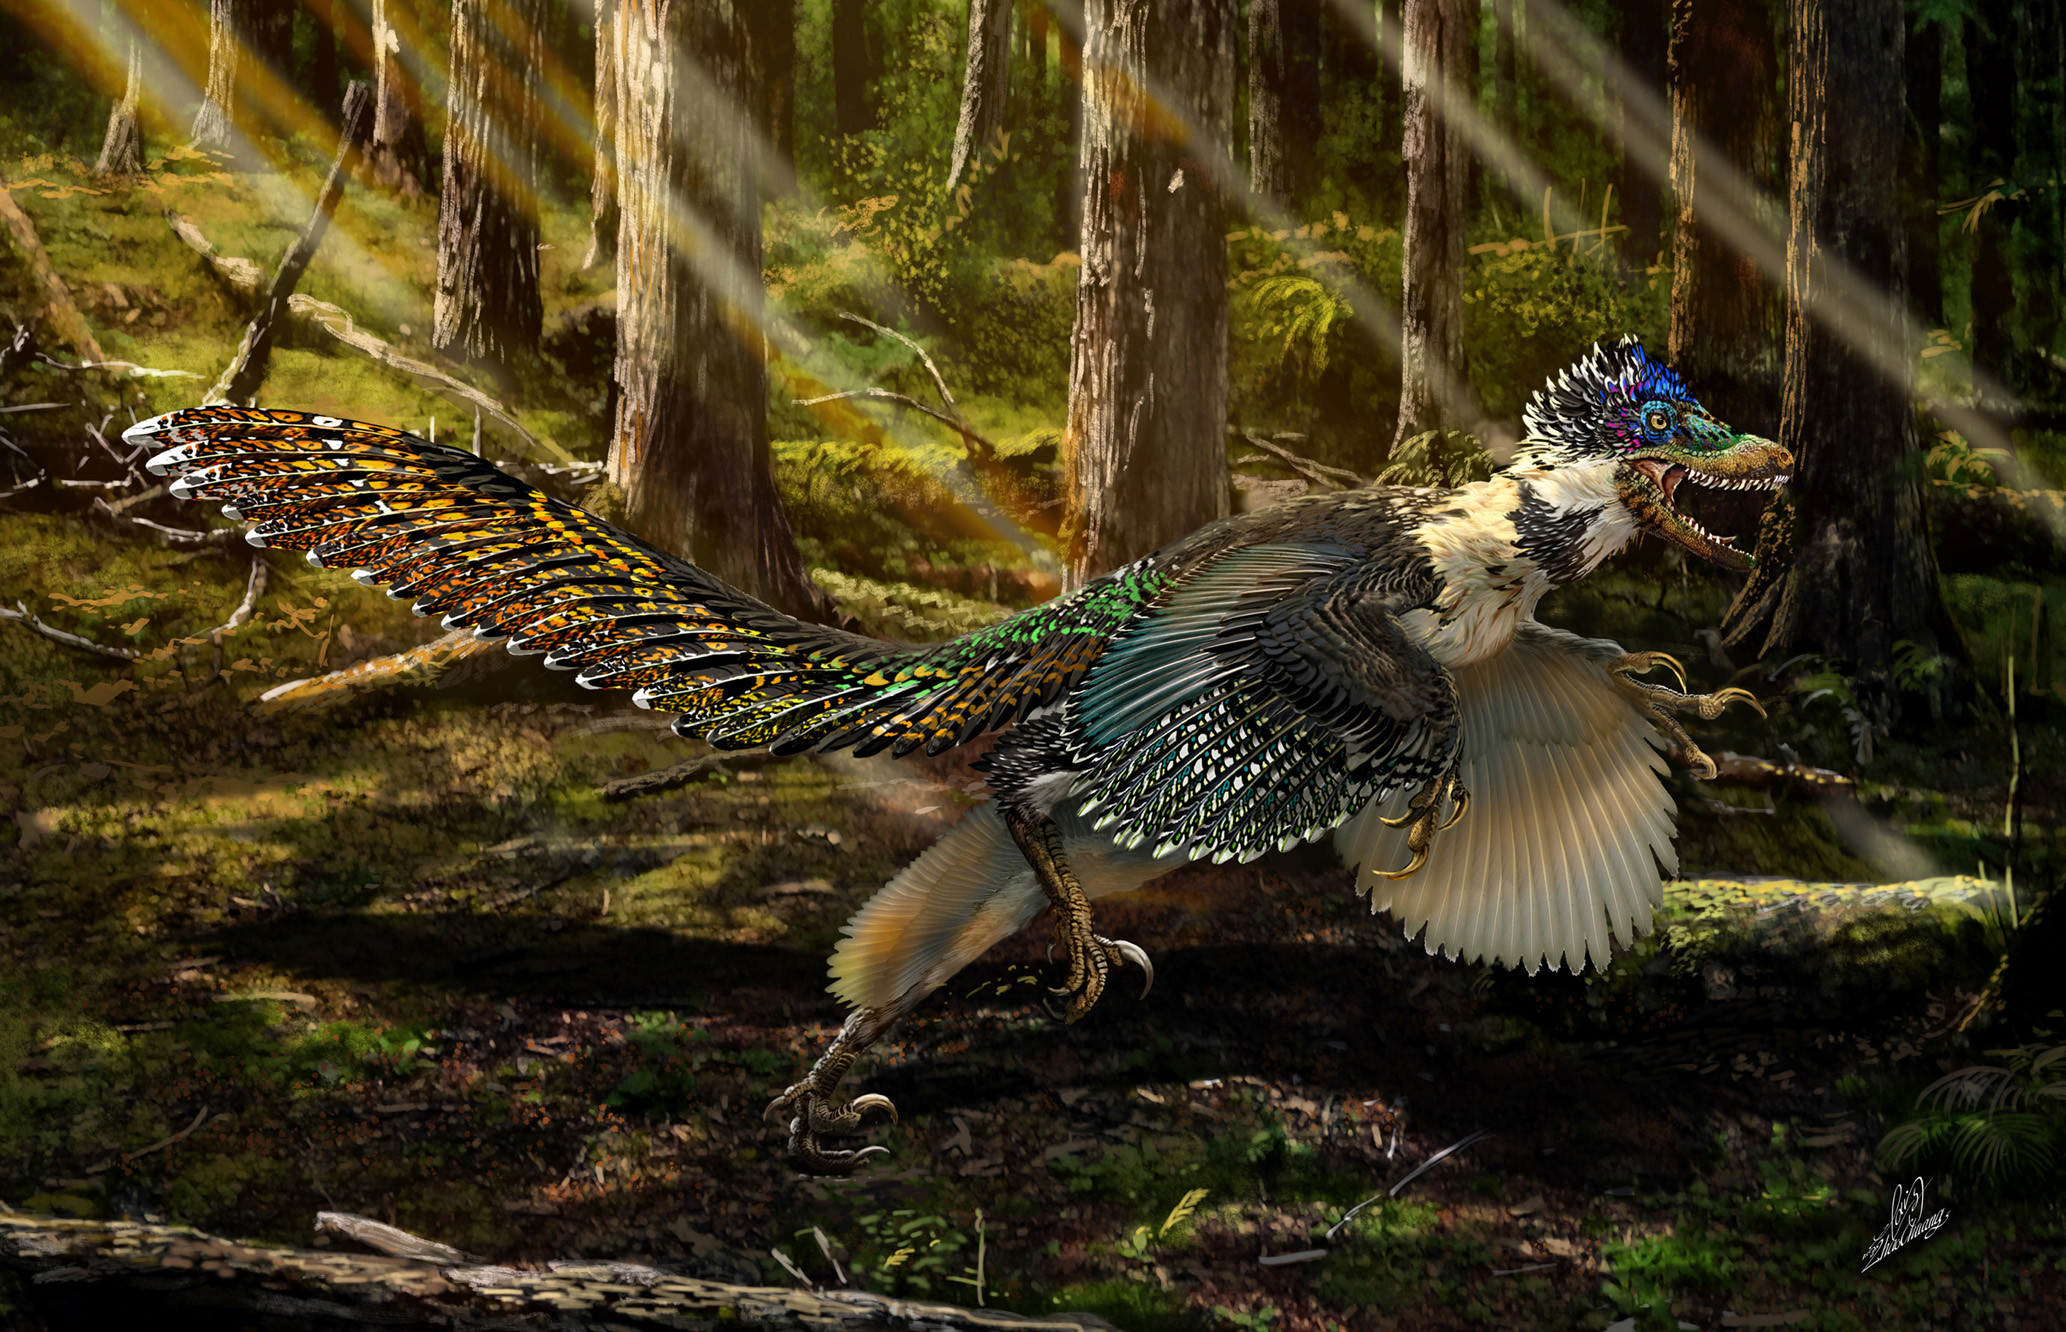 A RESTORATION OF ZHENYUANLONG IN A CRETACEOUS FOREST. Art: Zhao Chuang